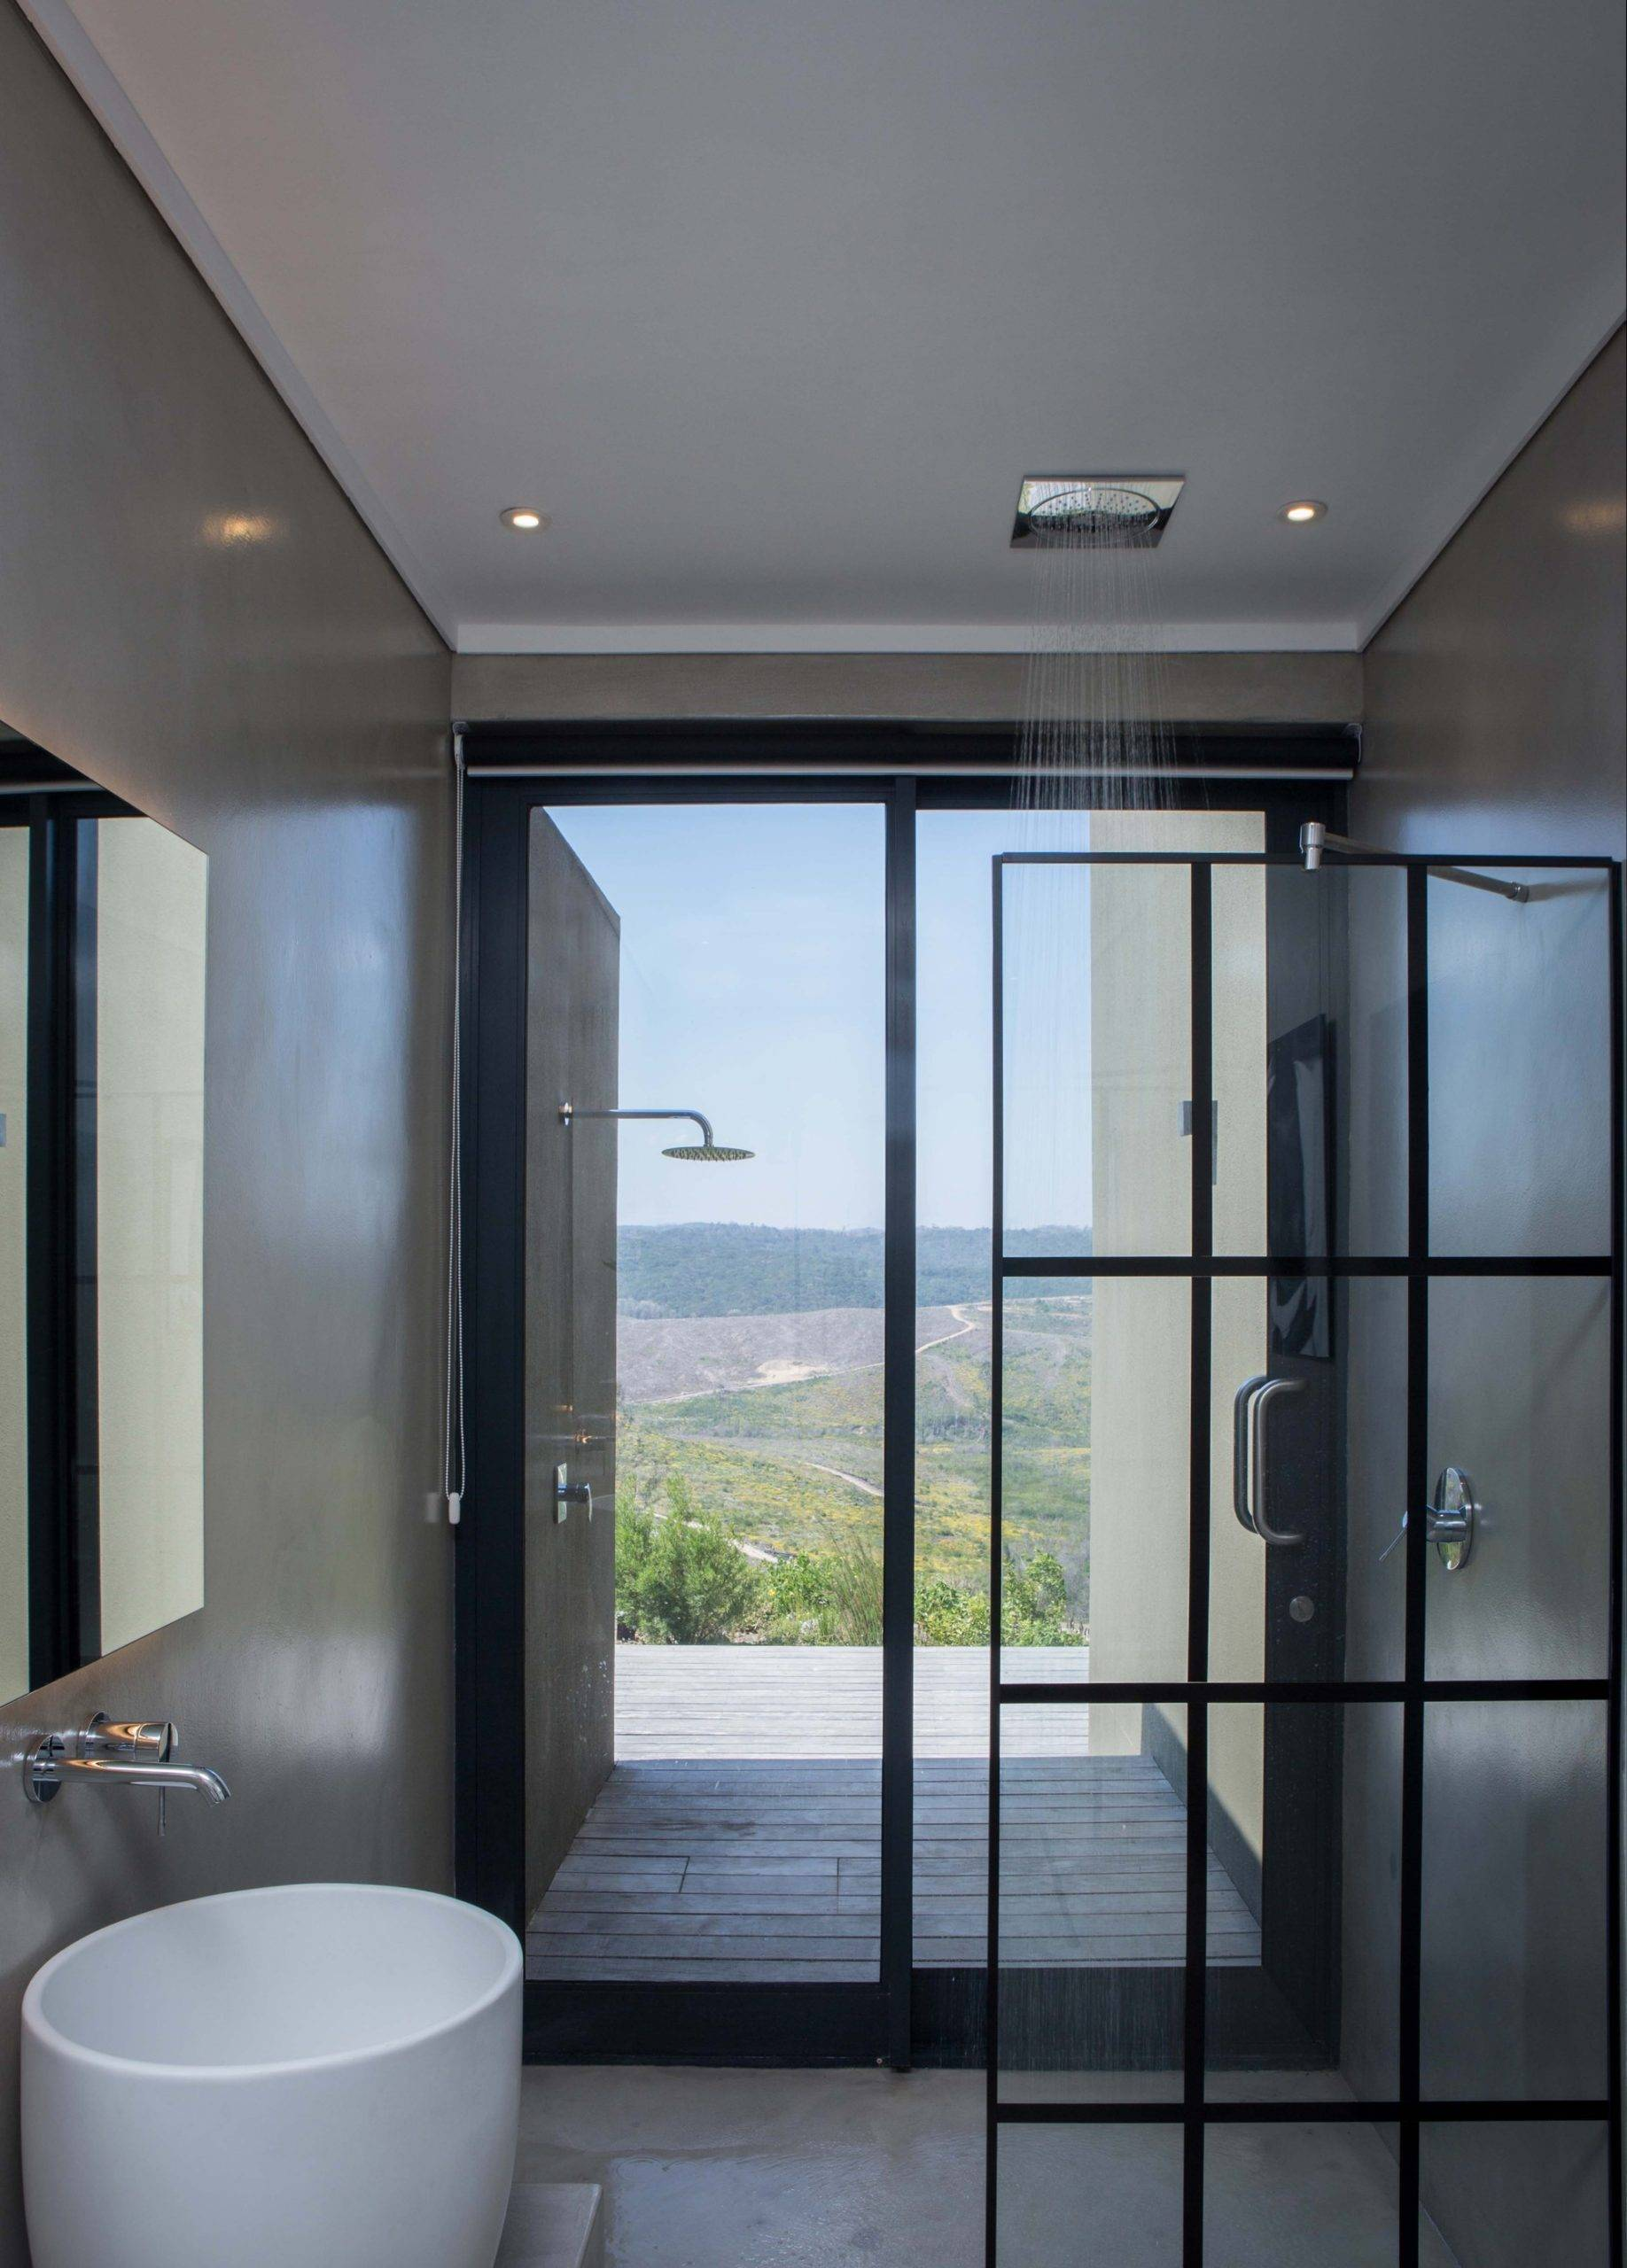 Exquisite contemporary bathroom in gray and white with glass partition